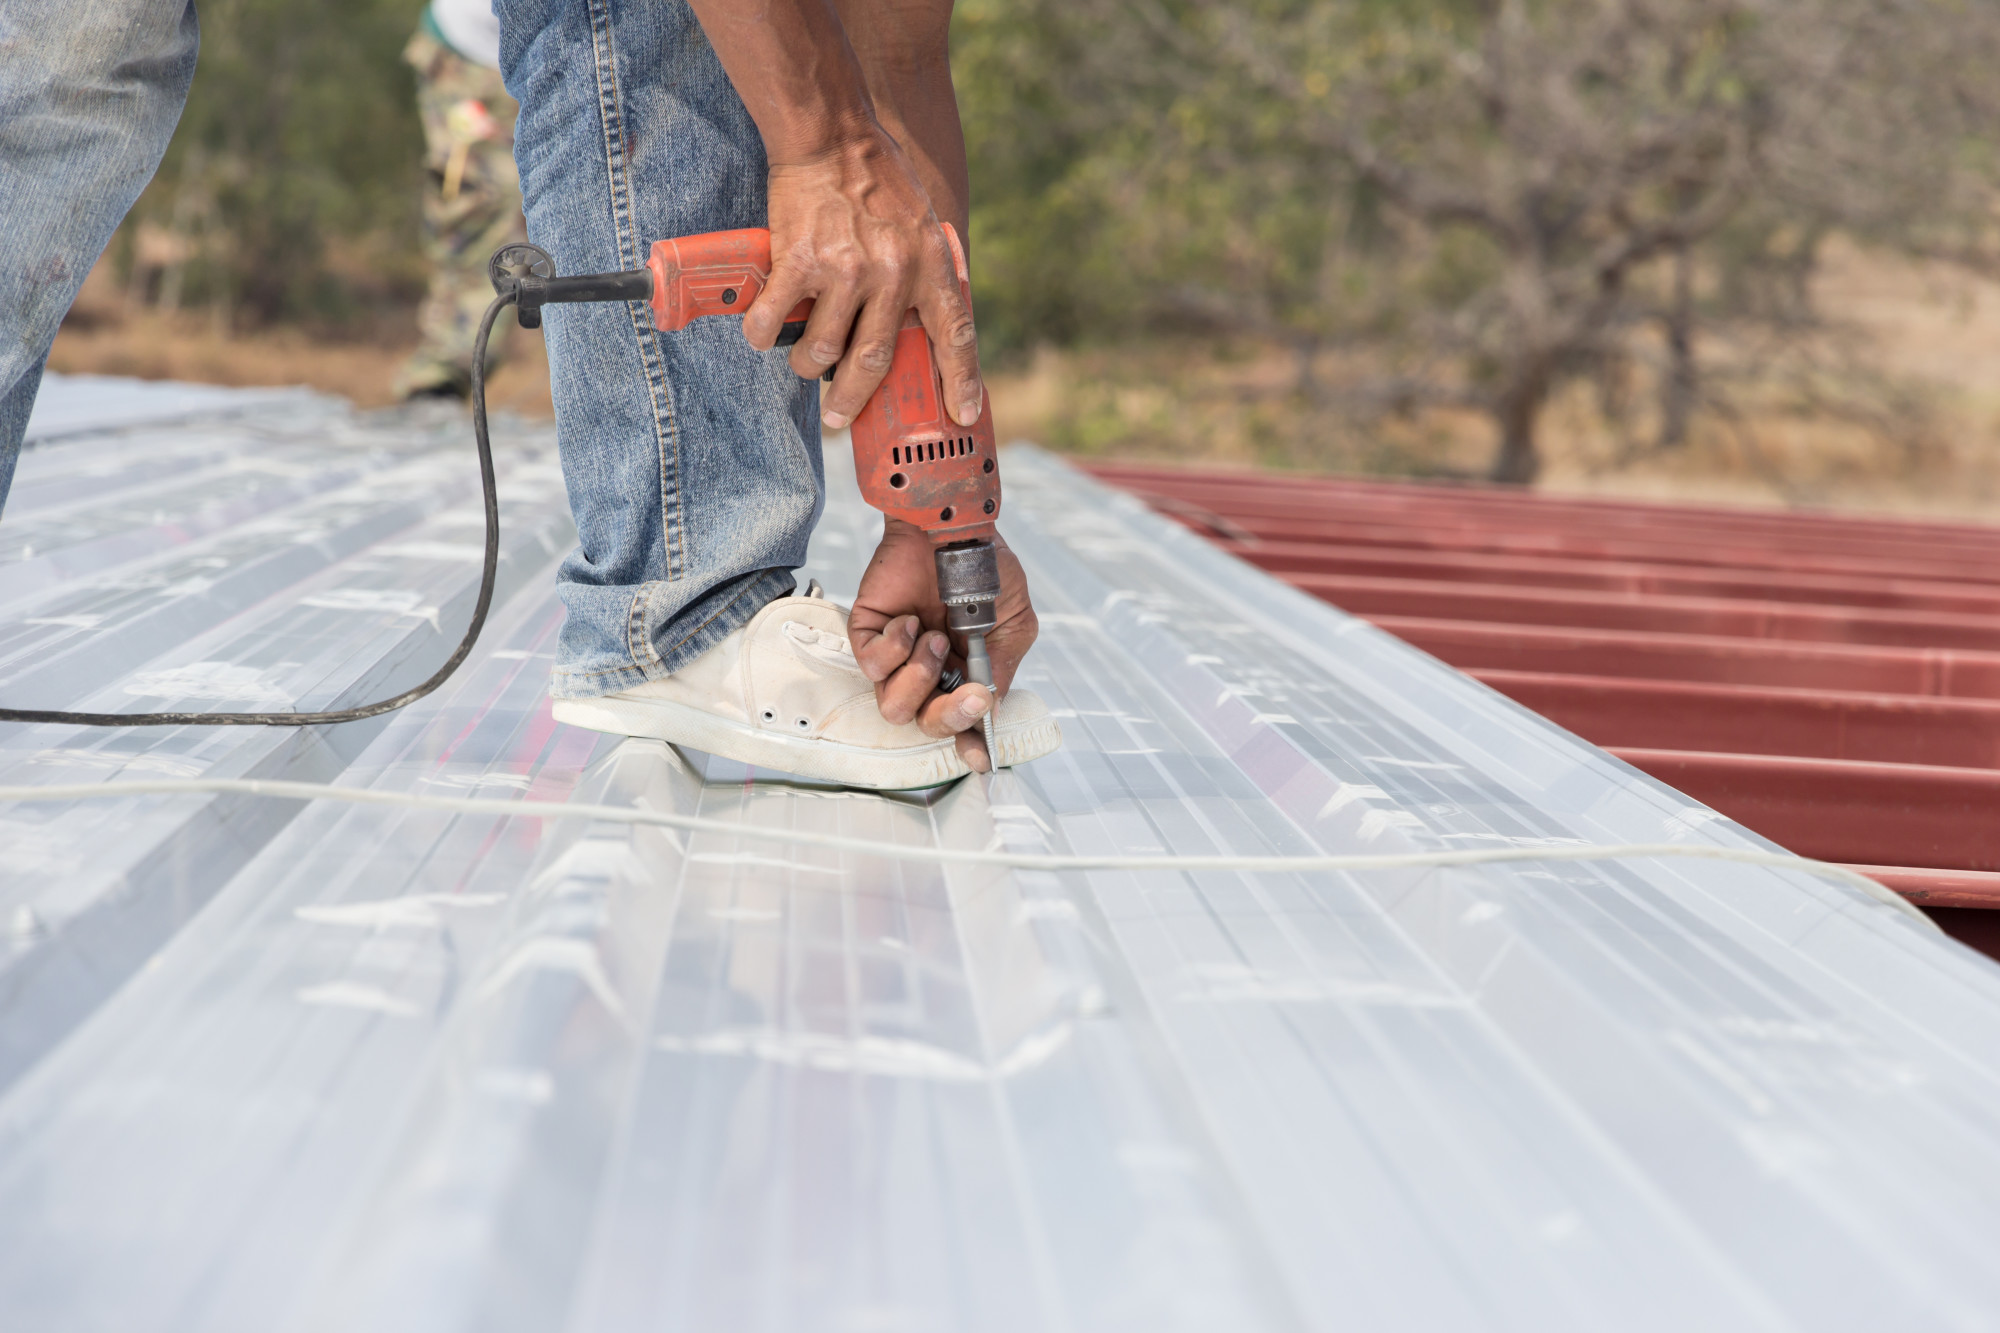 Are you wondering if a new roof will increase home value? Here is everything you need to know about the connection between roofing and home value.